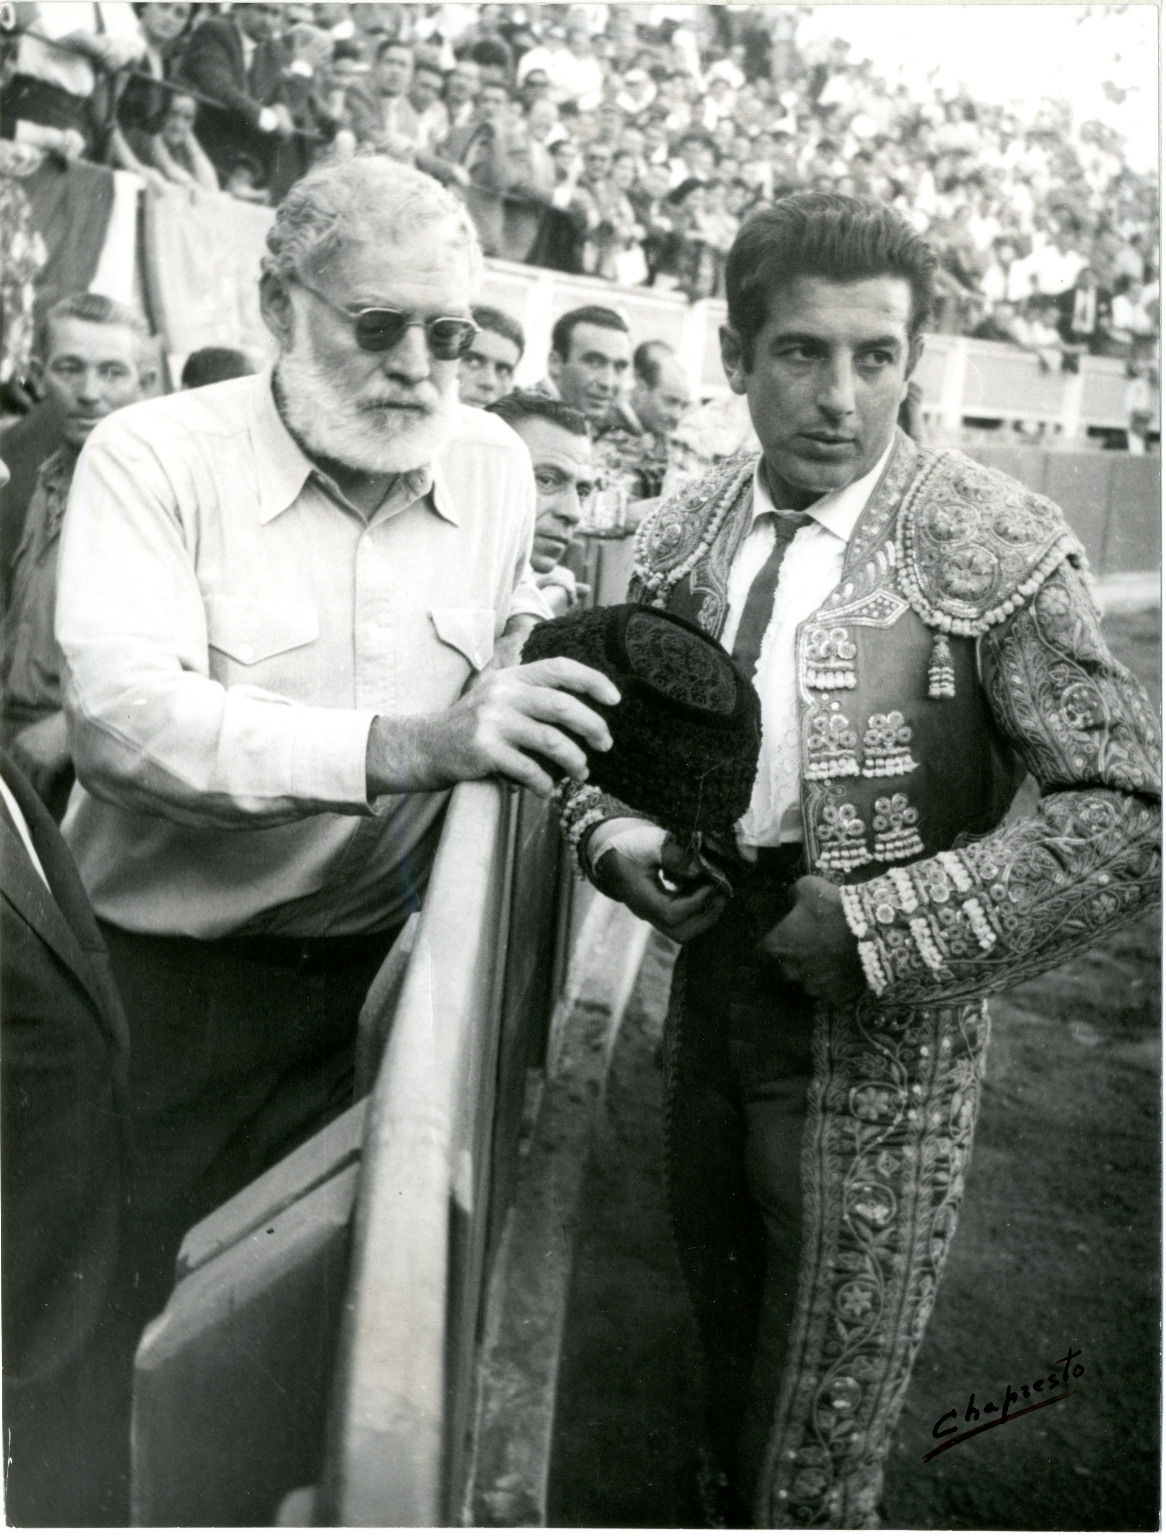 Hemingway and Ordonez Stand at the Edge of the Ring at a Bullfight